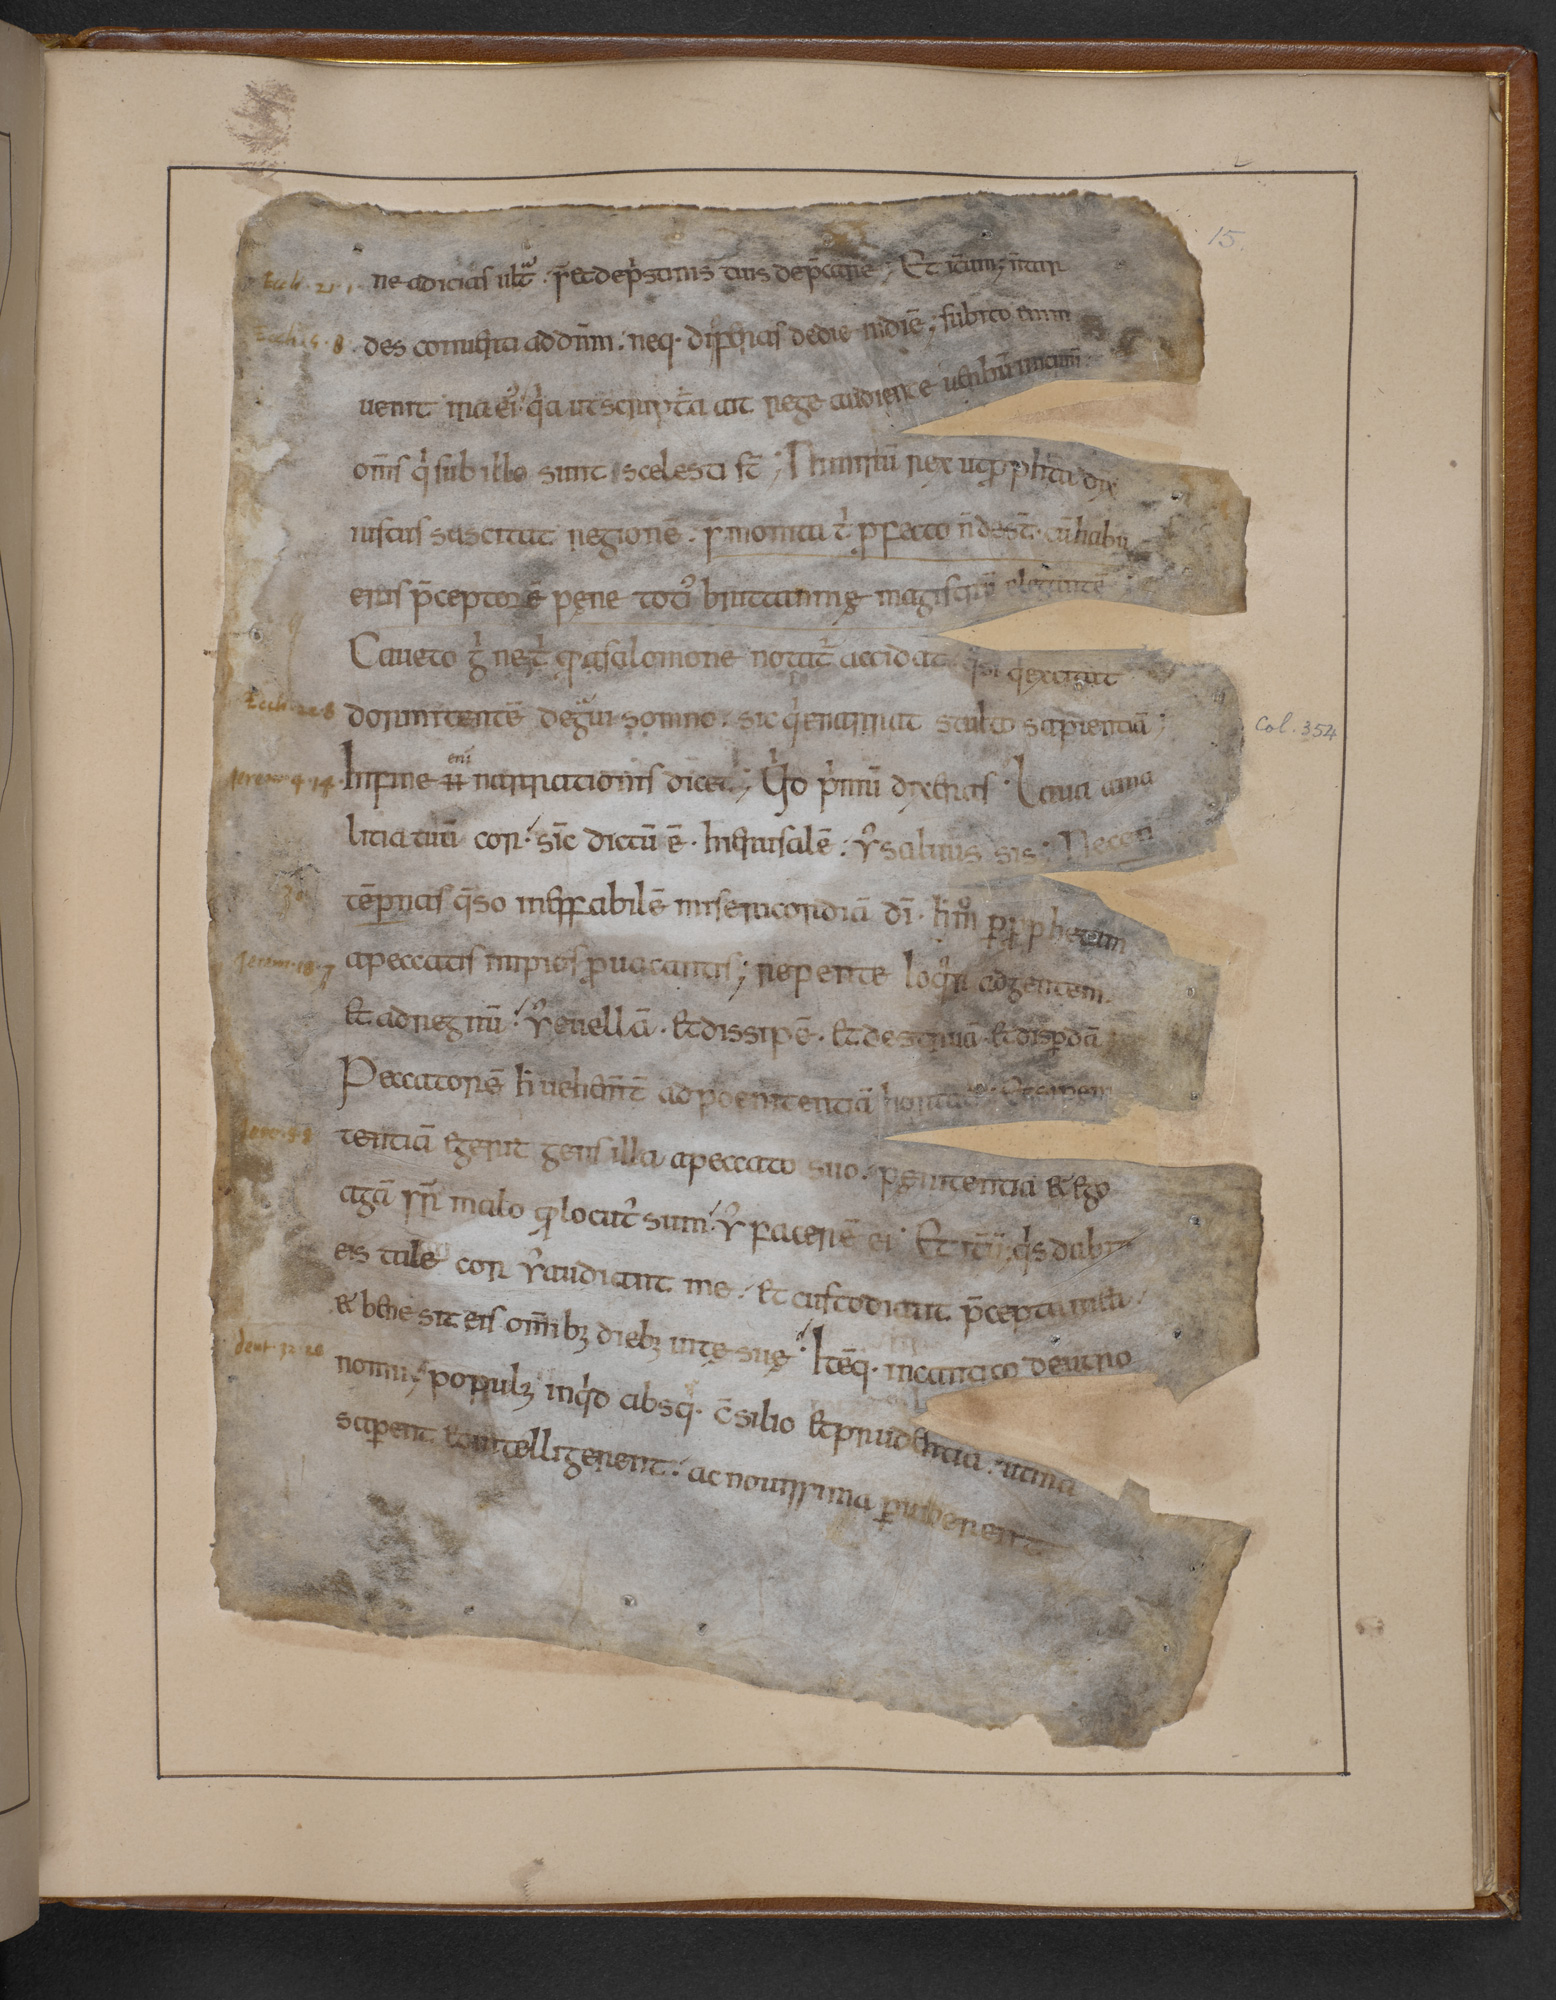 Cotton MS Vitellius A VI